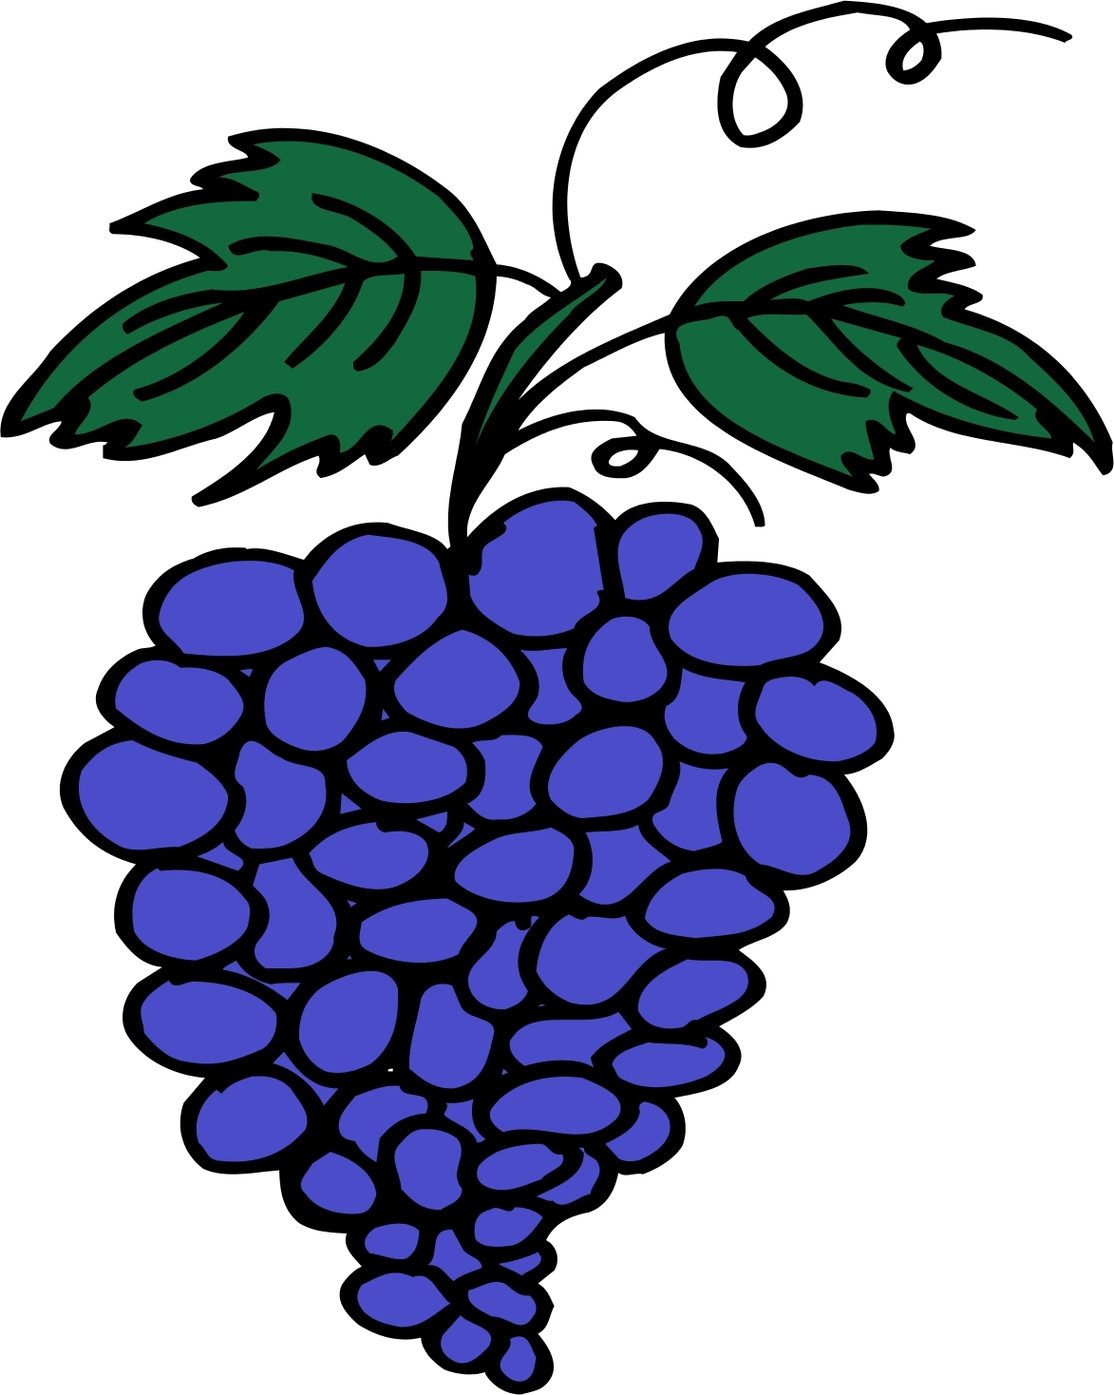 Grape clipart animated Animation Grapes The Grapes Grapes